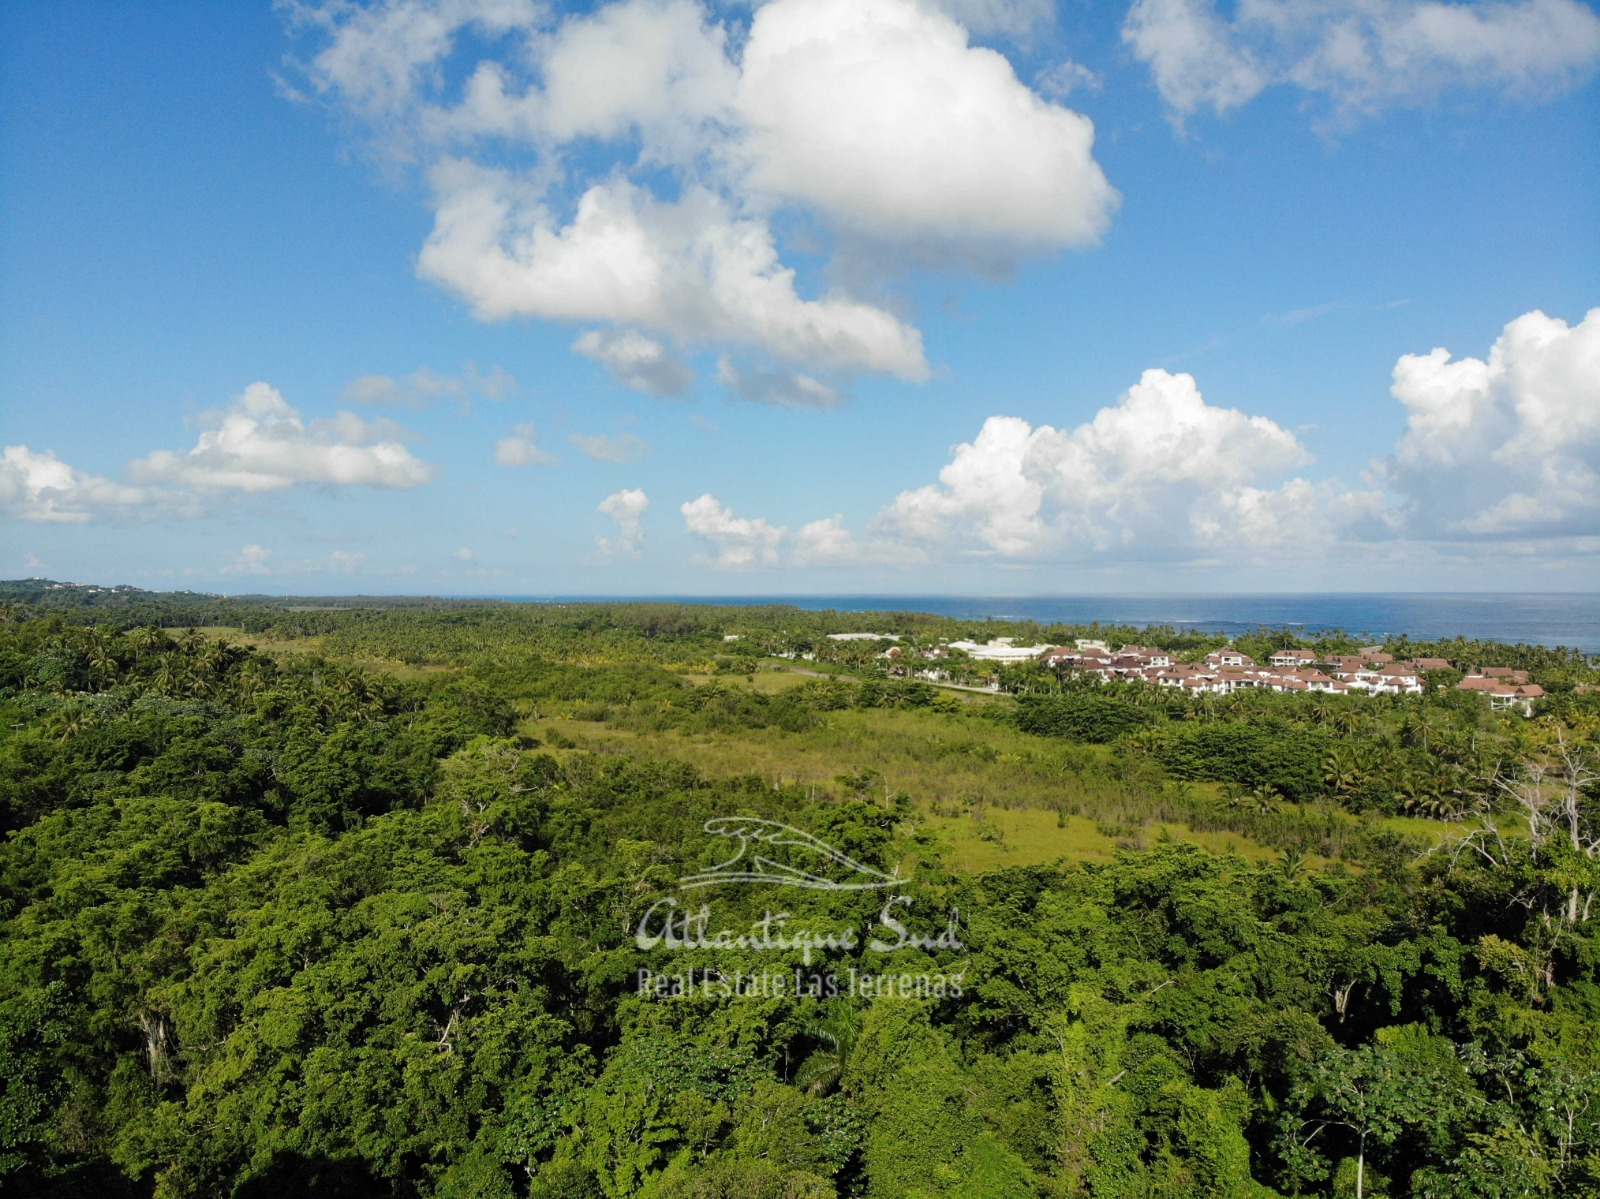 Land Lots for sale las terrenas samana22.jpeg